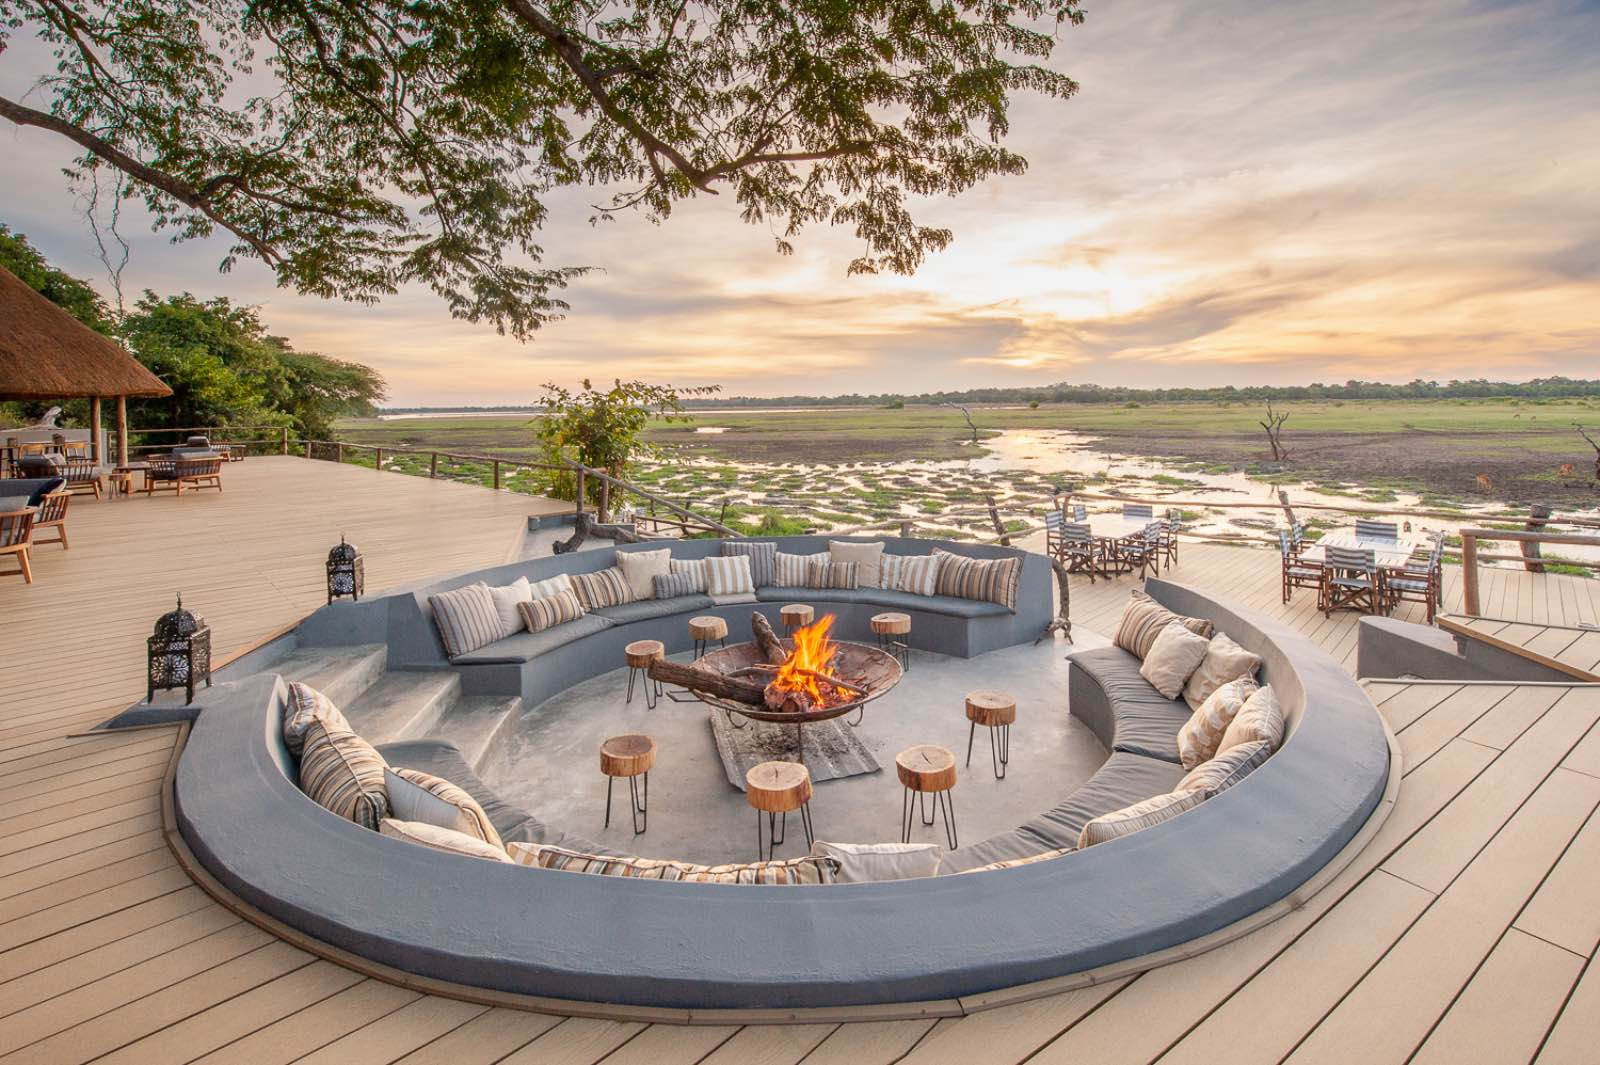 The sunken circular lounge surrounding the fire pit